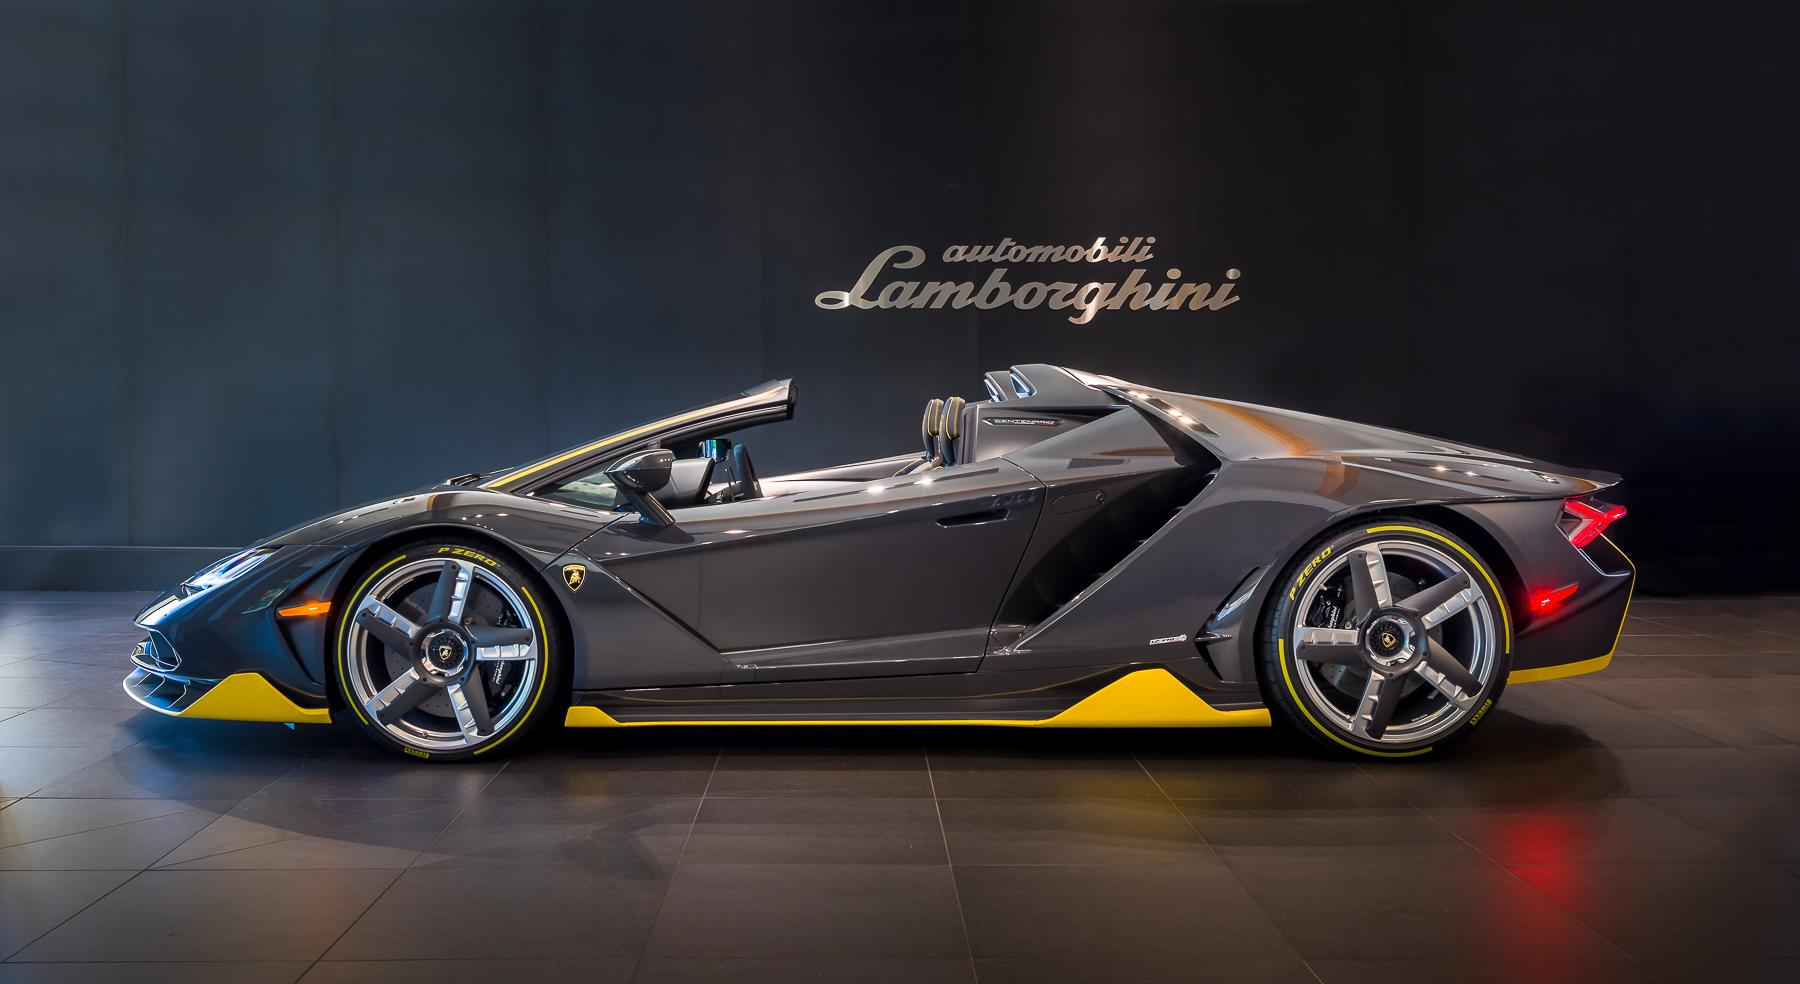 How much is a lamborghini in italy